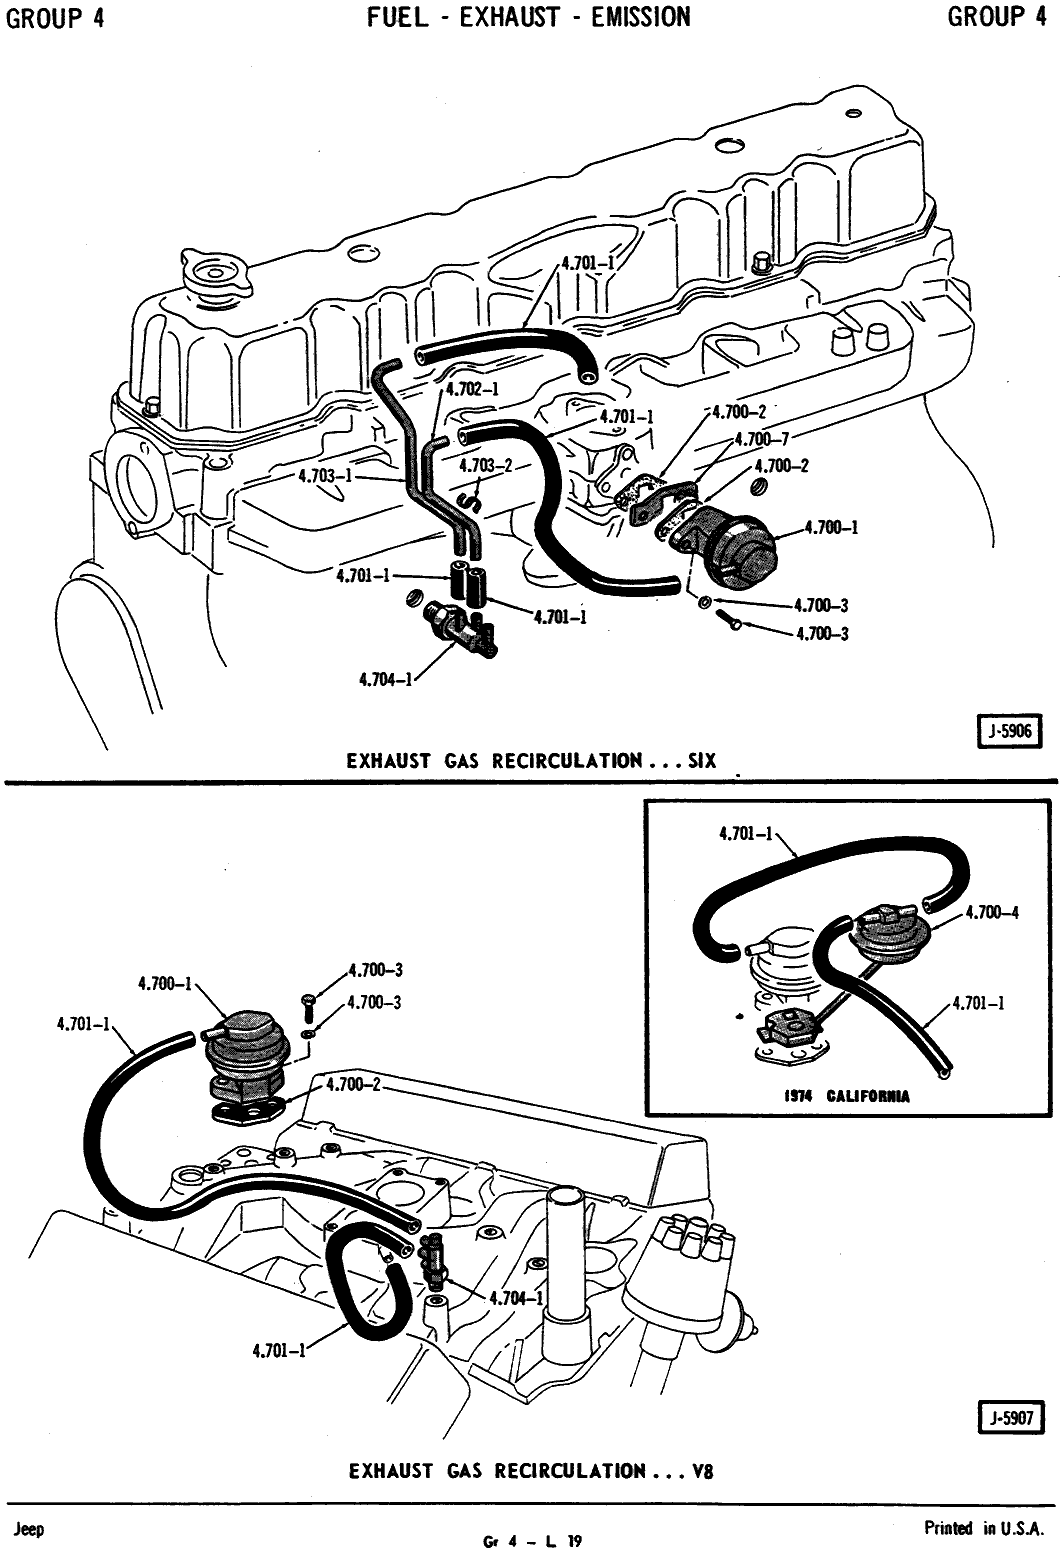 hight resolution of jeep grand cherokee vacuum line diagram further 1985 jeep cj7 1985 jeep cherokee vacuum diagram